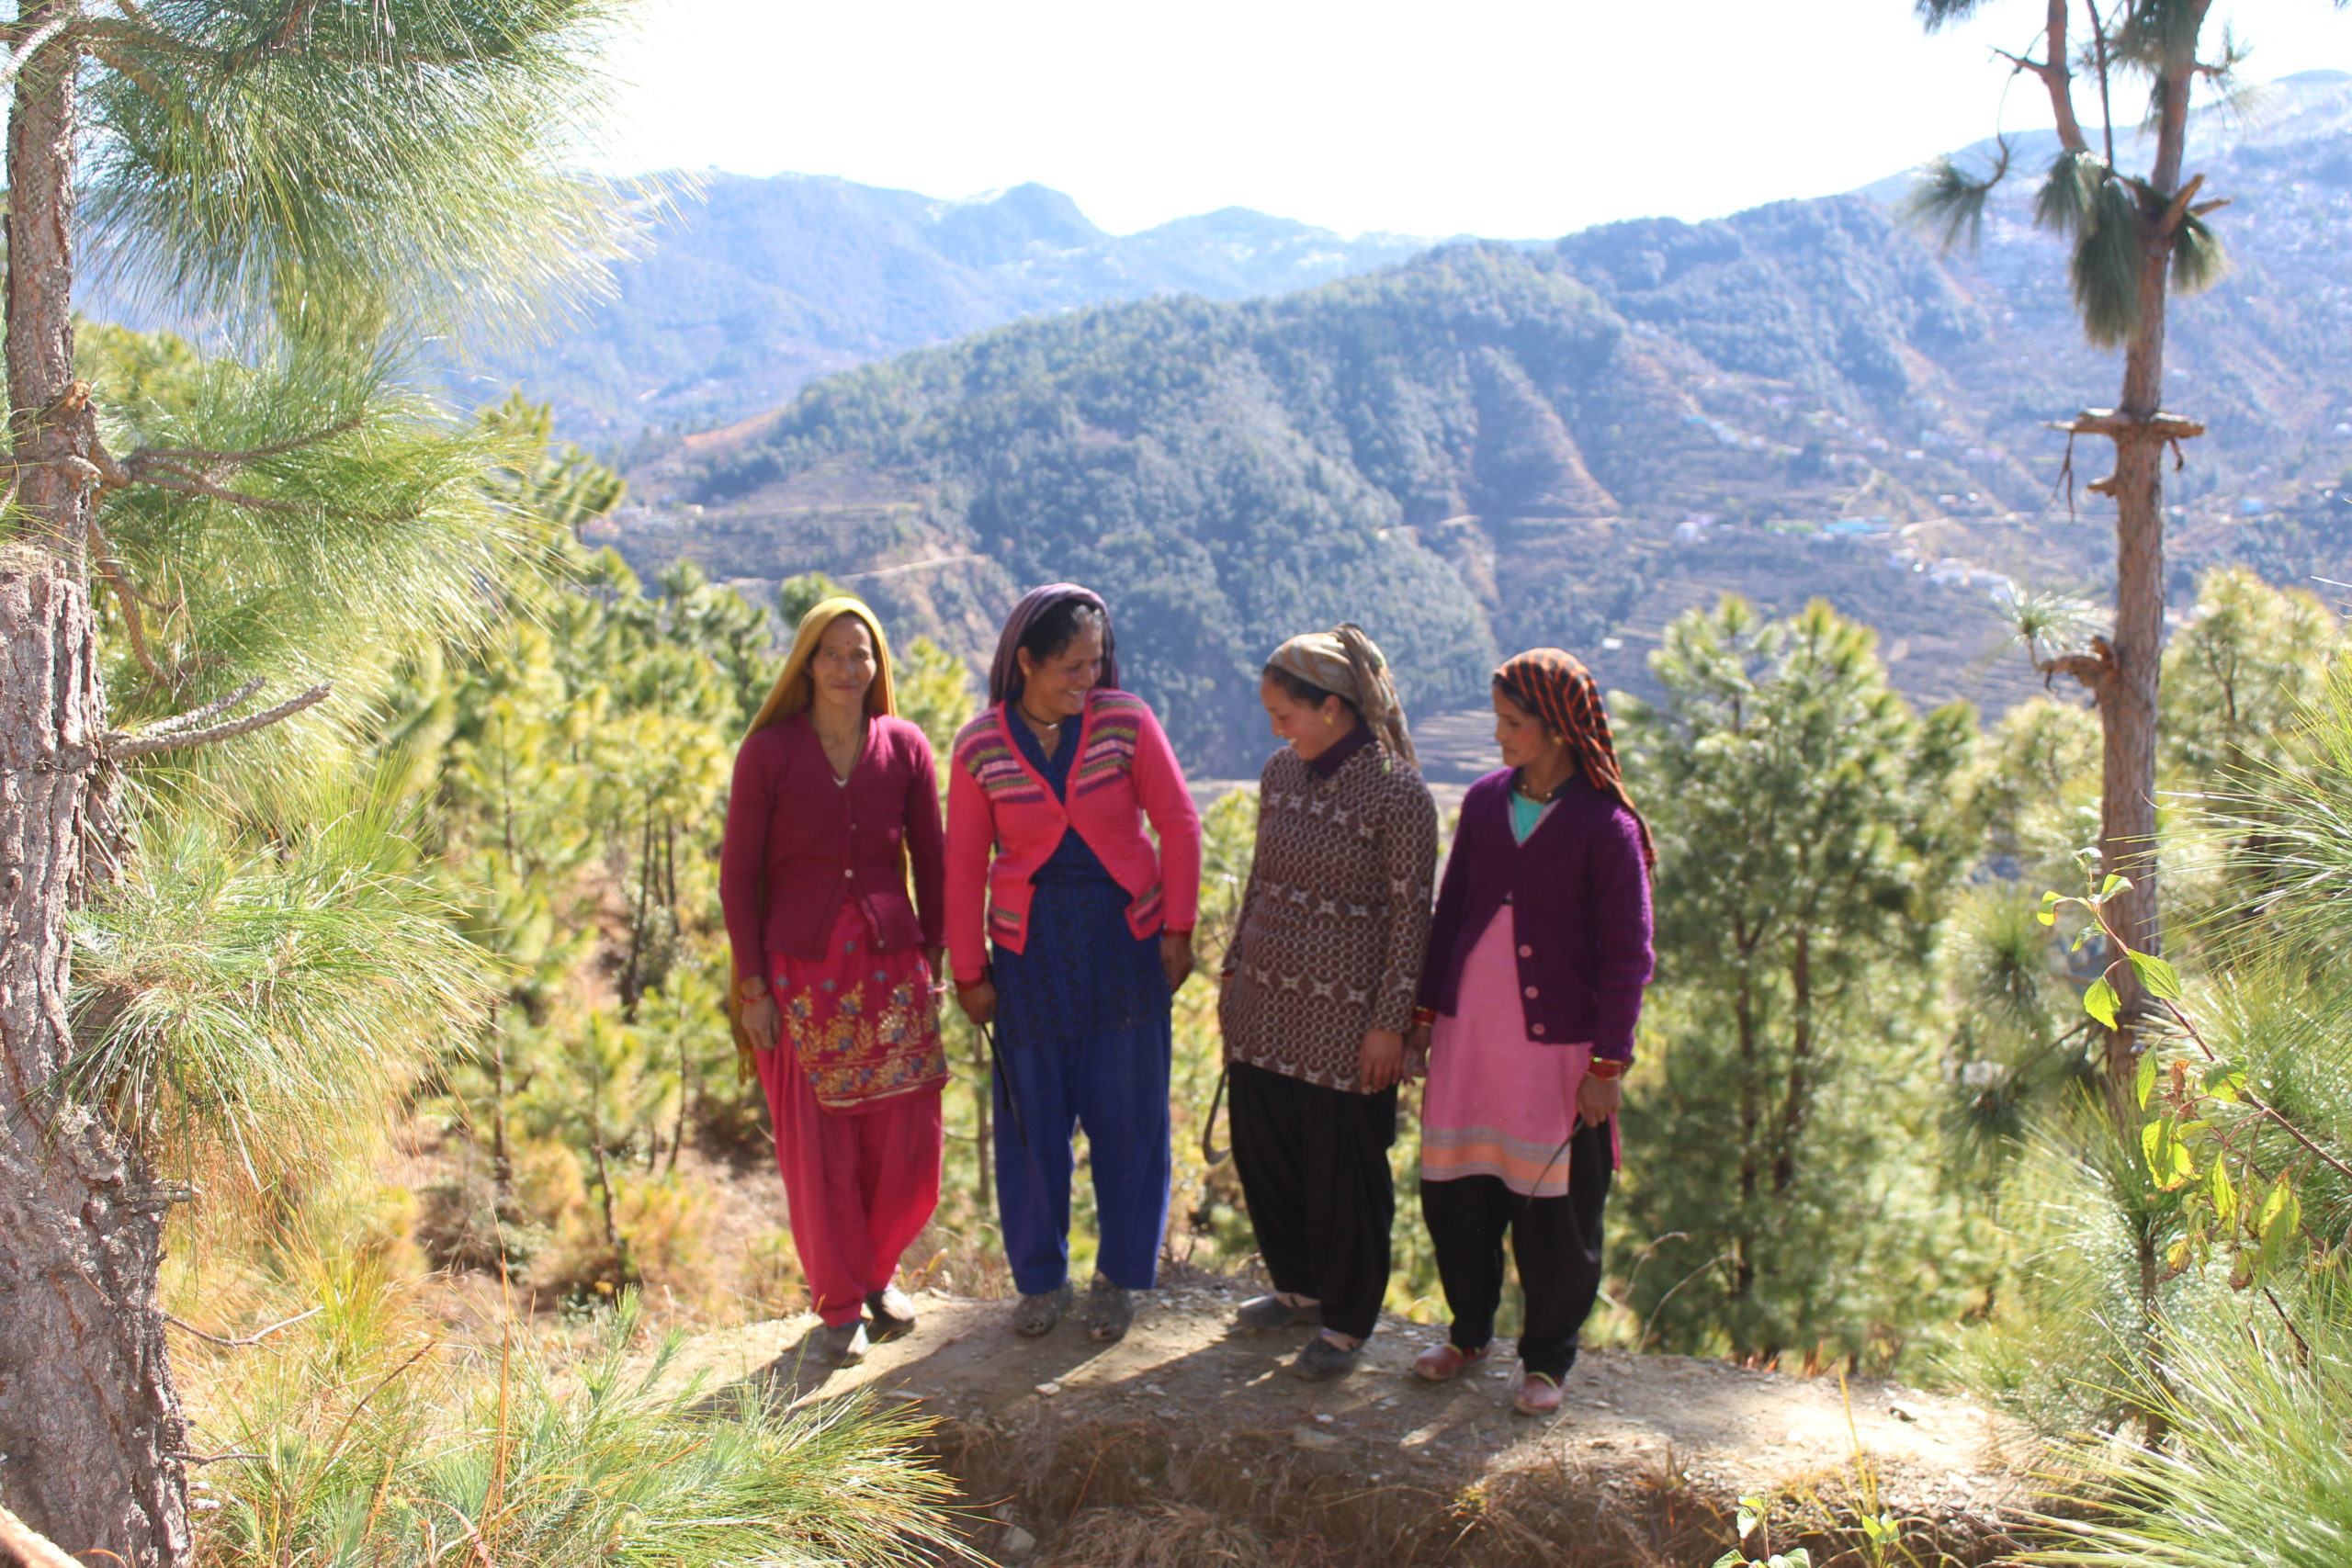 Women in Nathuakhan village, Nainital, Uttarakhand, who have just pruned trees in a water-recharge zone, Manya Singh